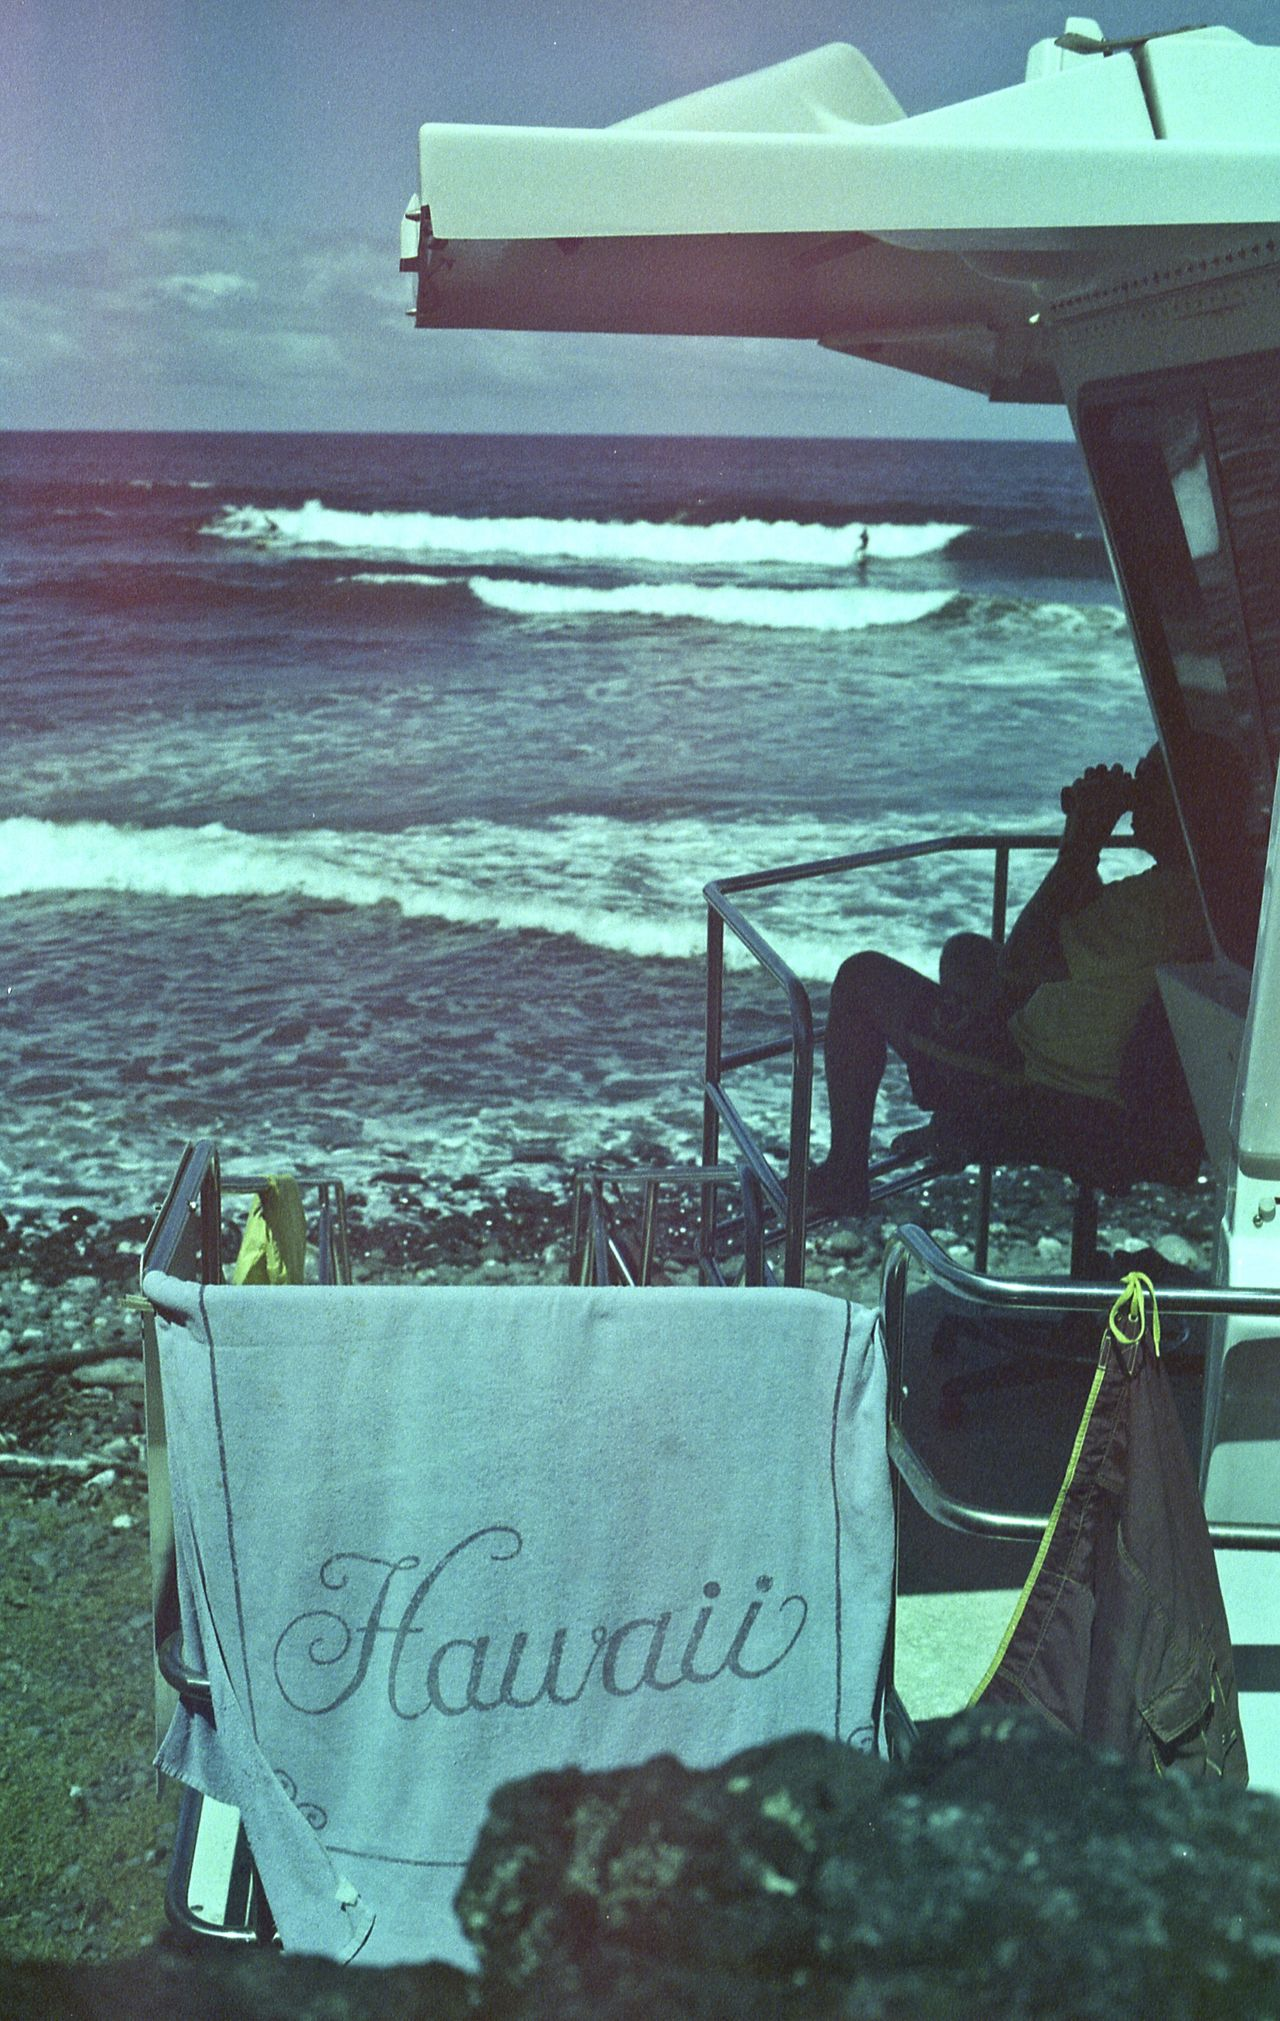 Sea Water Ocean Summer Shore Hawaii Bigisland Honolii Hilo  Lifeguard Station Lifeguard  Surf First Eyeem Photo Film Photography Analog Photography Travel 35mm